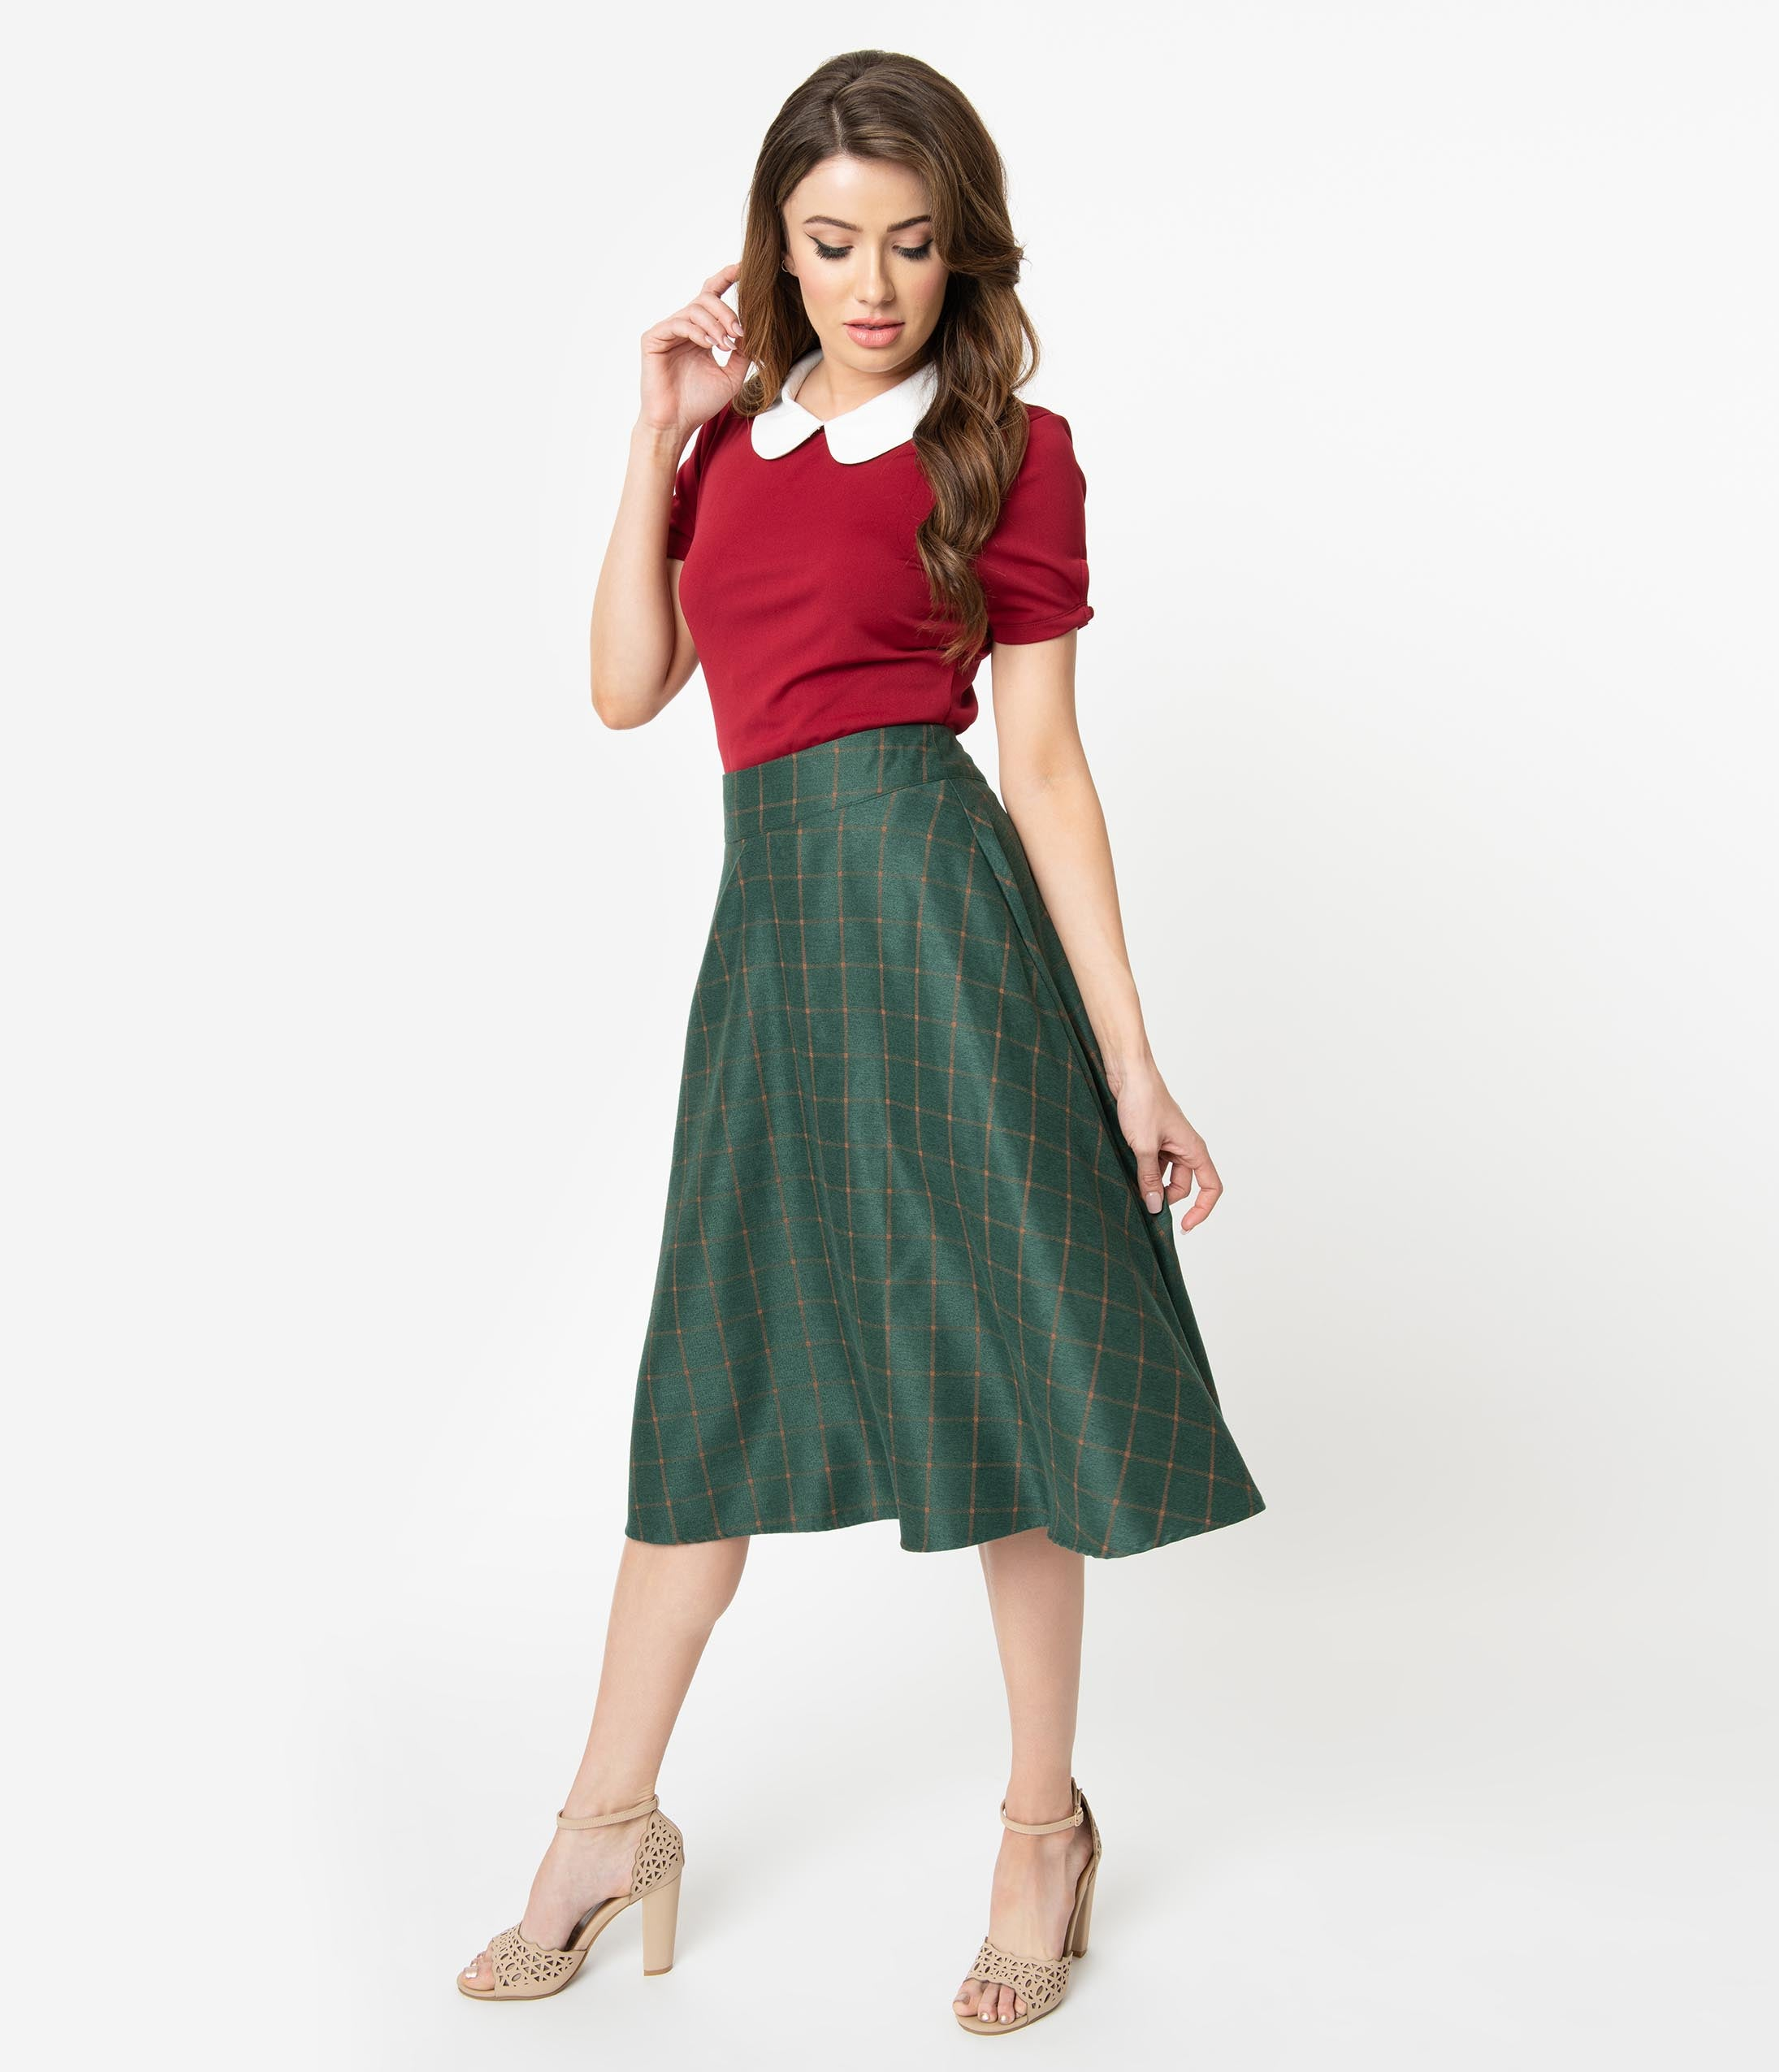 50s Skirt Styles | Poodle Skirts, Circle Skirts, Pencil Skirts 1950s Unique Vintage Retro Style Green  Orange Windowpane High Waist Vivien Swing Skirt $58.00 AT vintagedancer.com